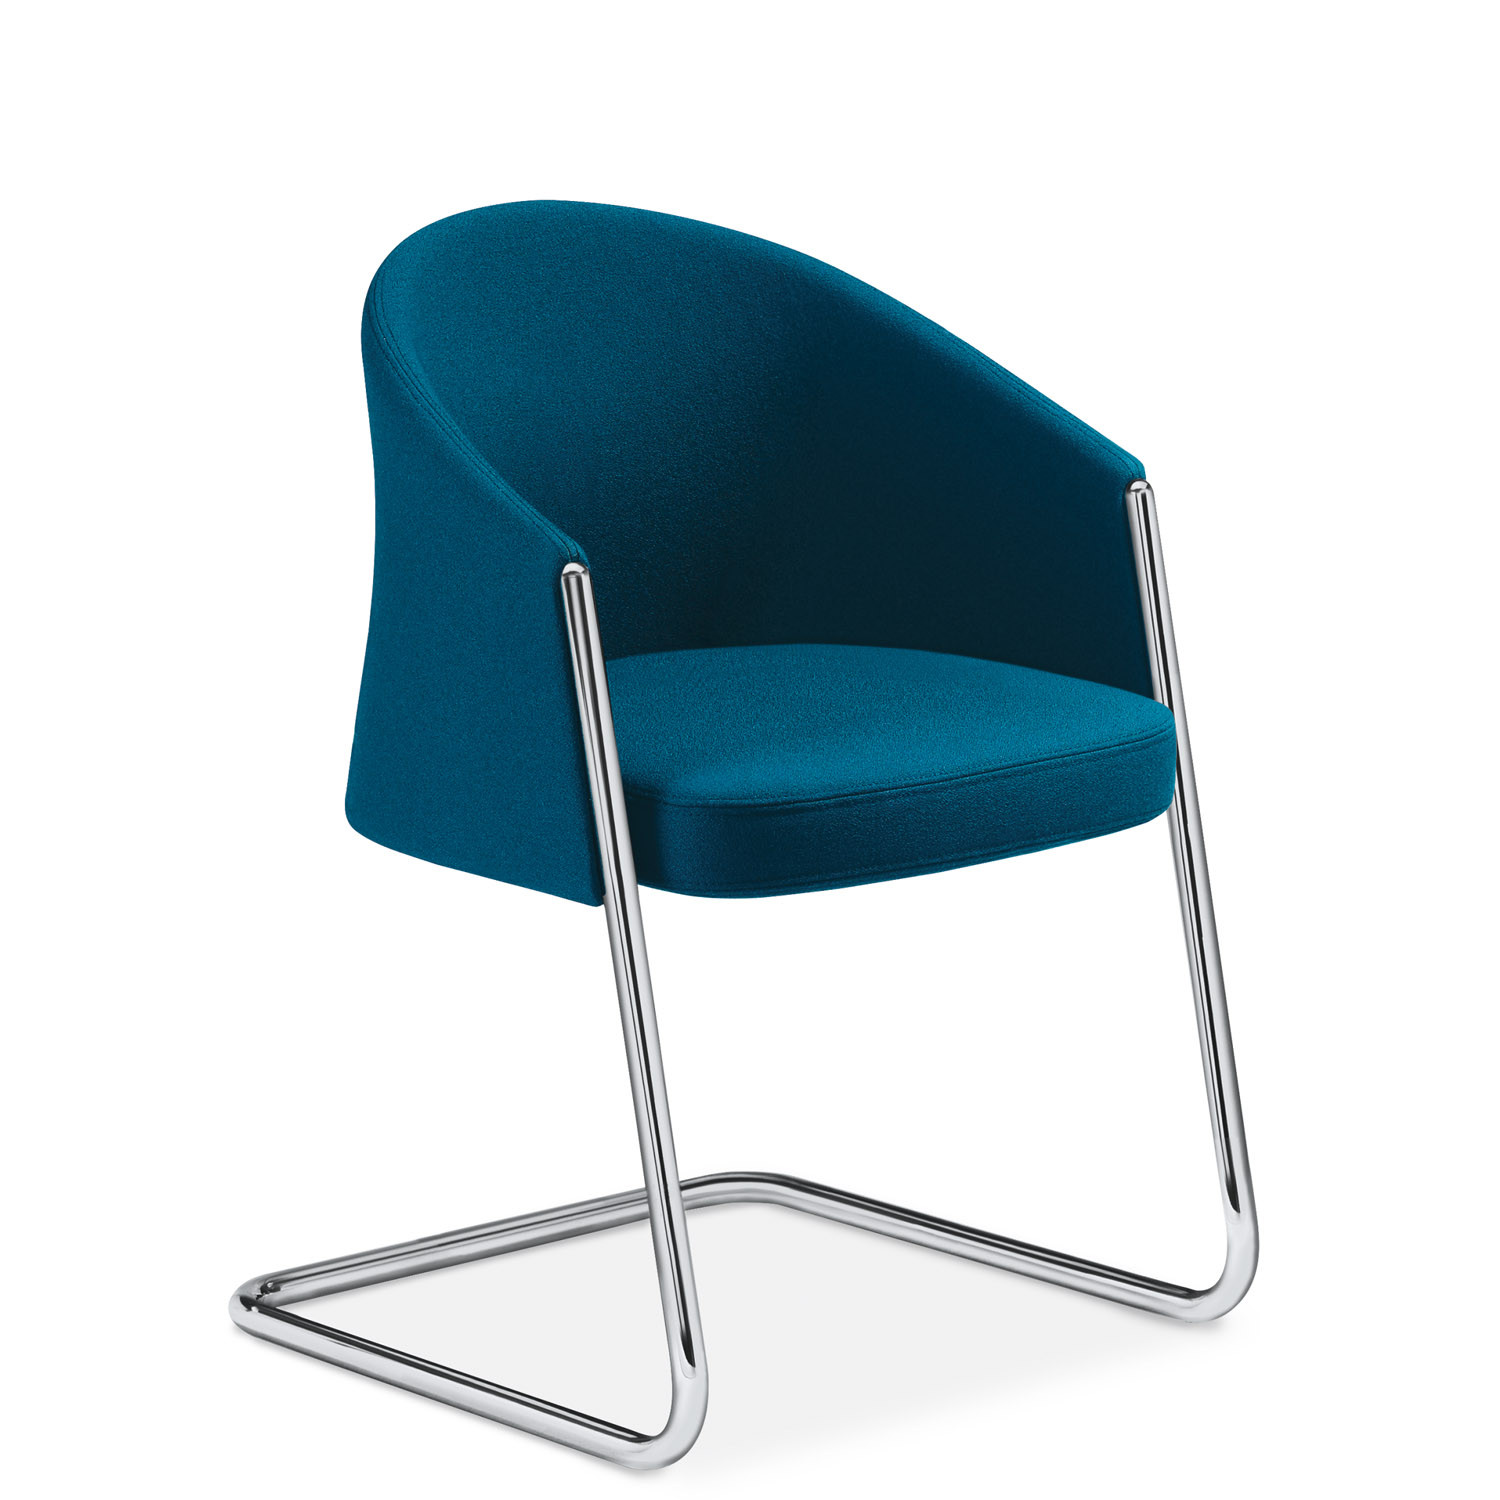 Silent Rush Cantilever Chair